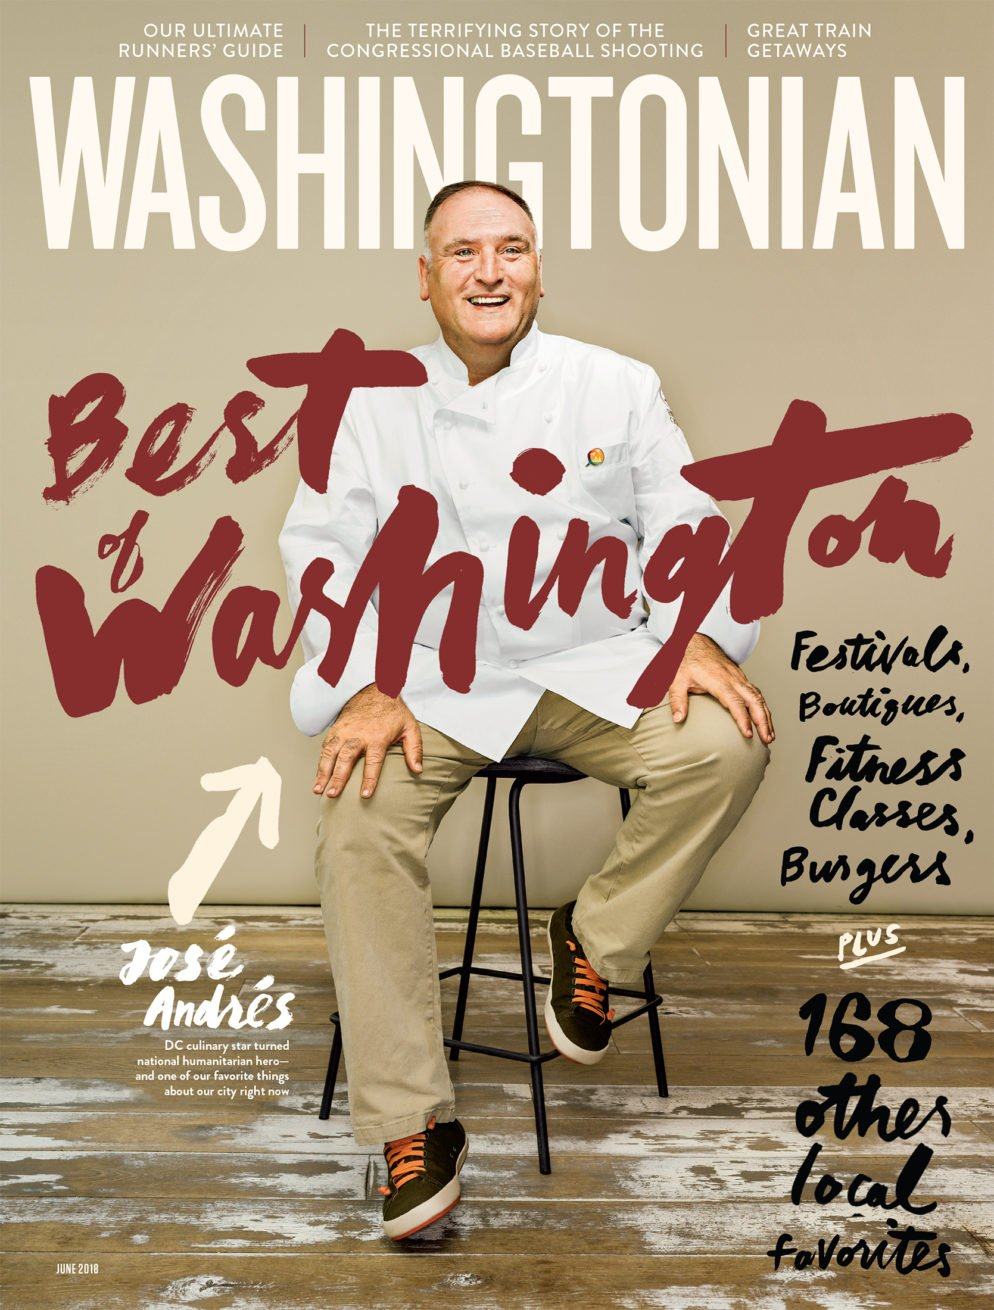 June 2018: Best of Washington